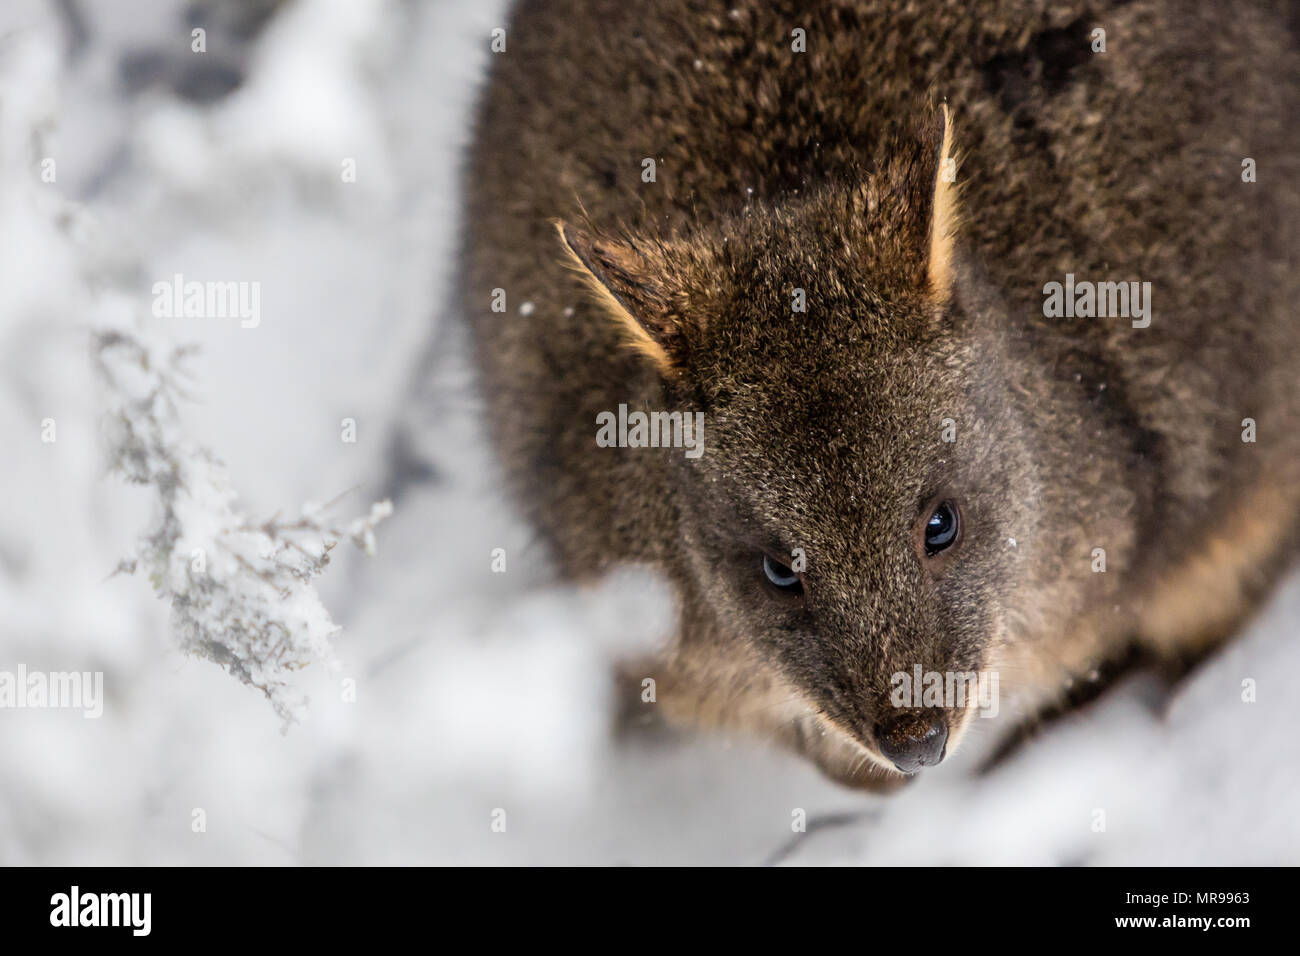 Wallabies Tasmania High Resolution Stock Photography And Images Alamy